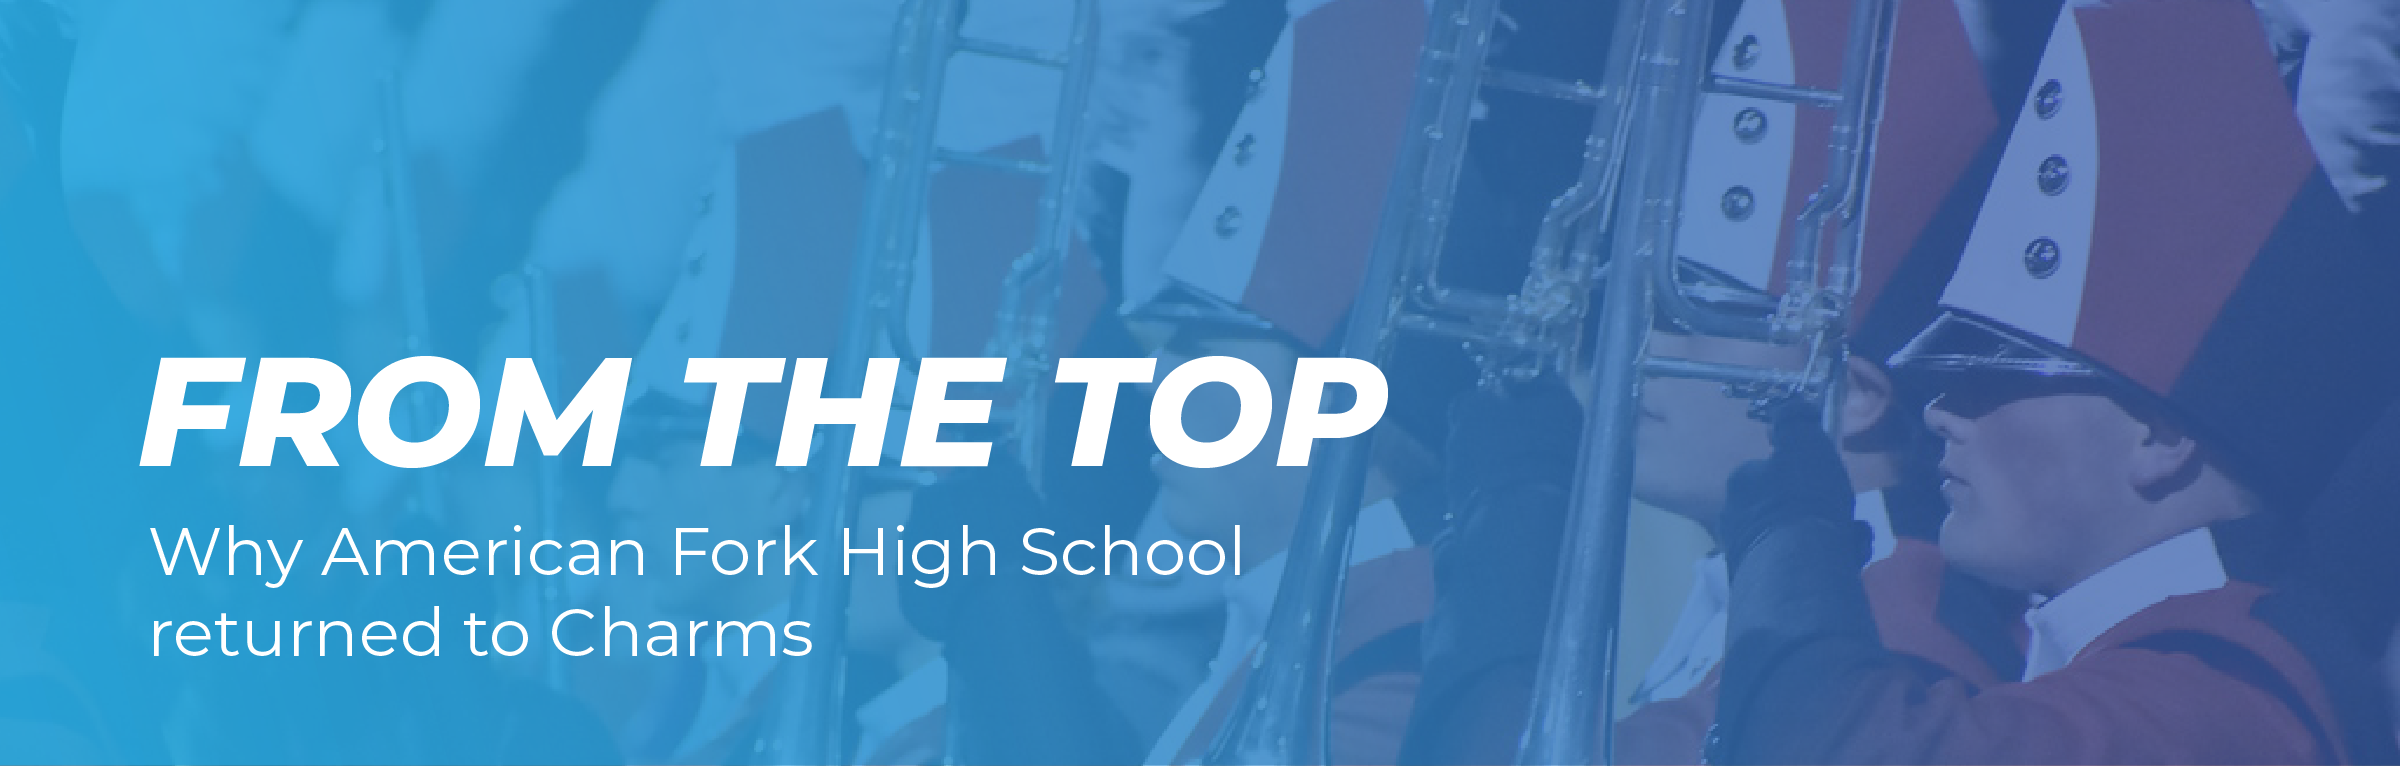 From the Top: Why American Fork High School returned to Charms